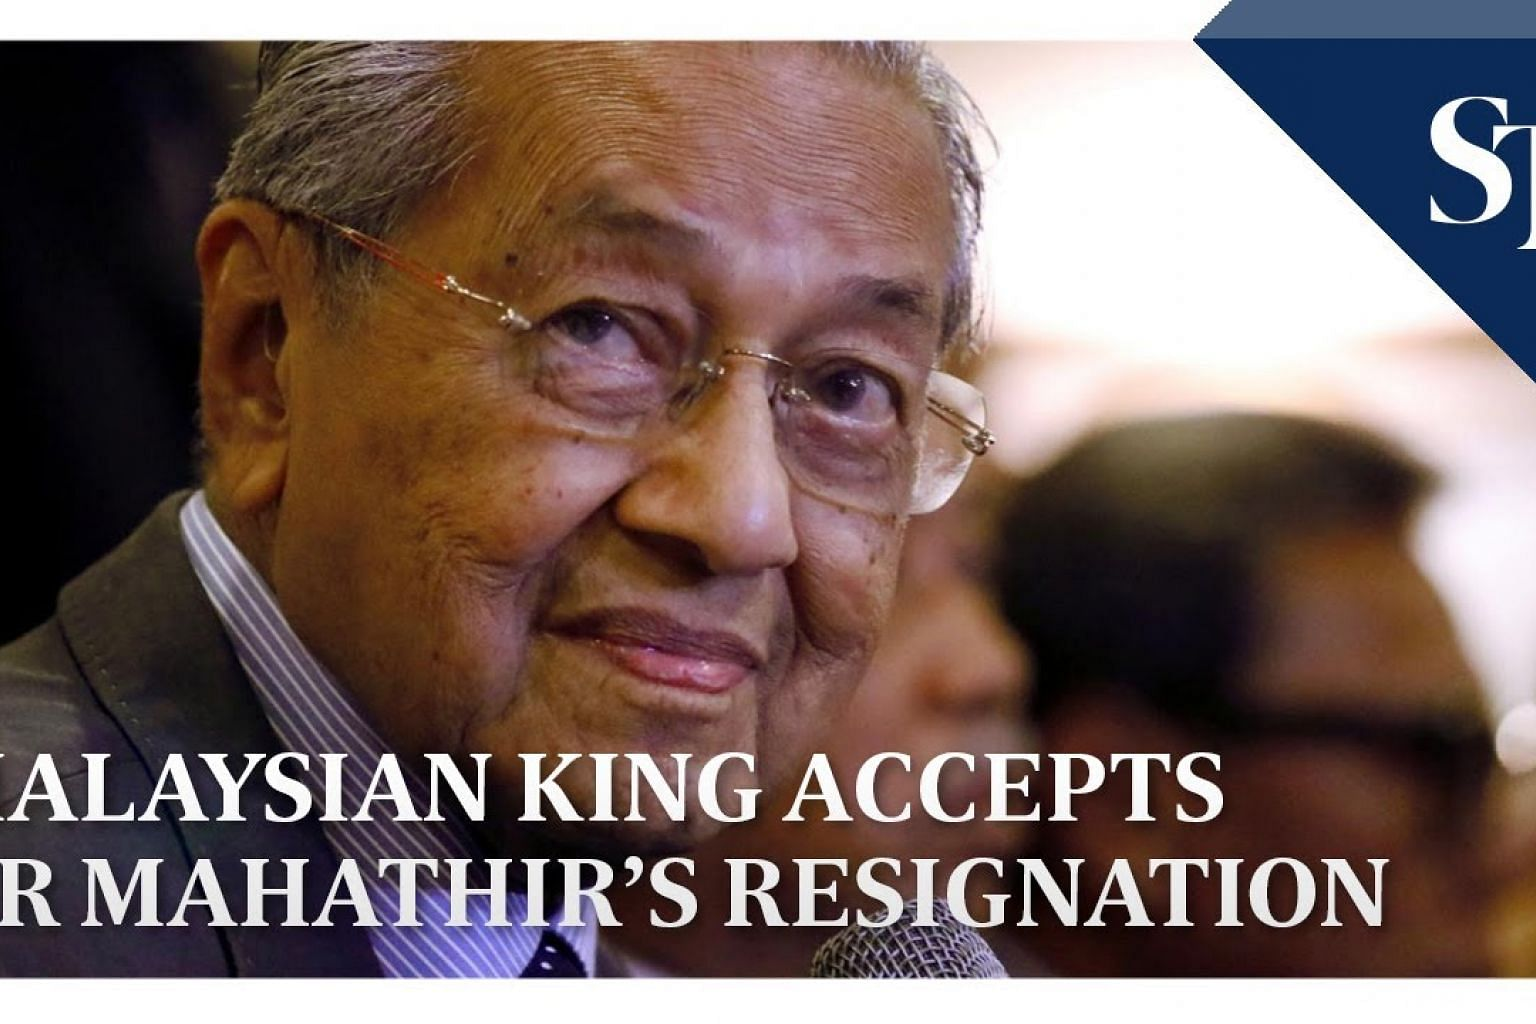 Malaysian King accepts Dr Mahathir's resignation | THE BIG STORY